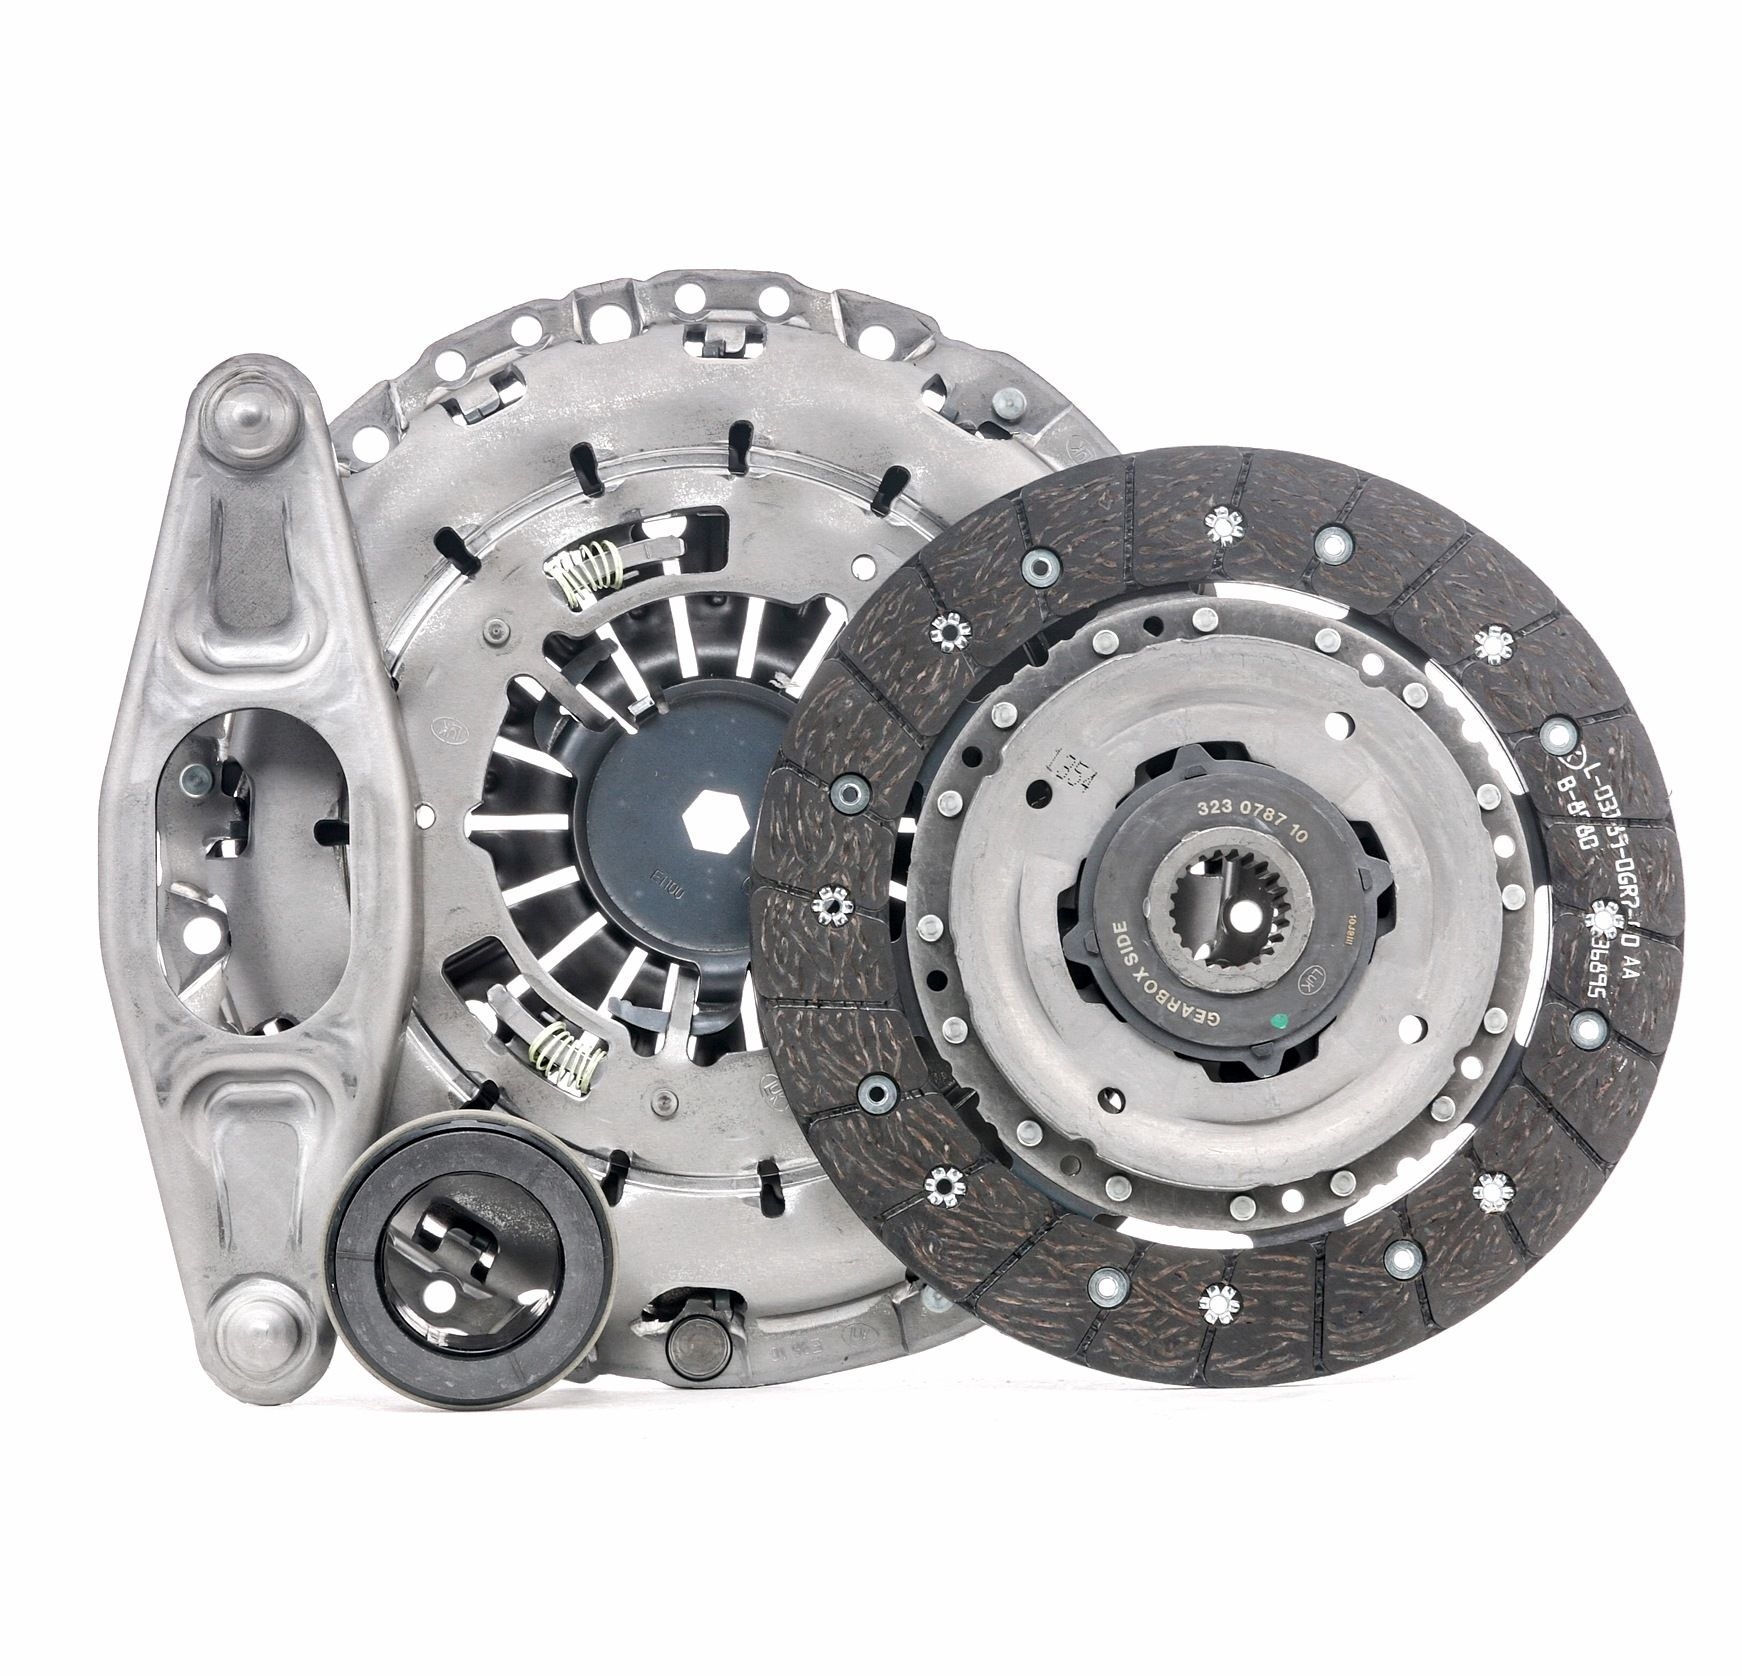 BMW 3 Series 2019 Clutch set LuK 624 3530 00: for engines with dual-mass flywheel, Check and replace dual-mass flywheel if necessary., Requires special tools for mounting, with clutch release bearing, with release fork